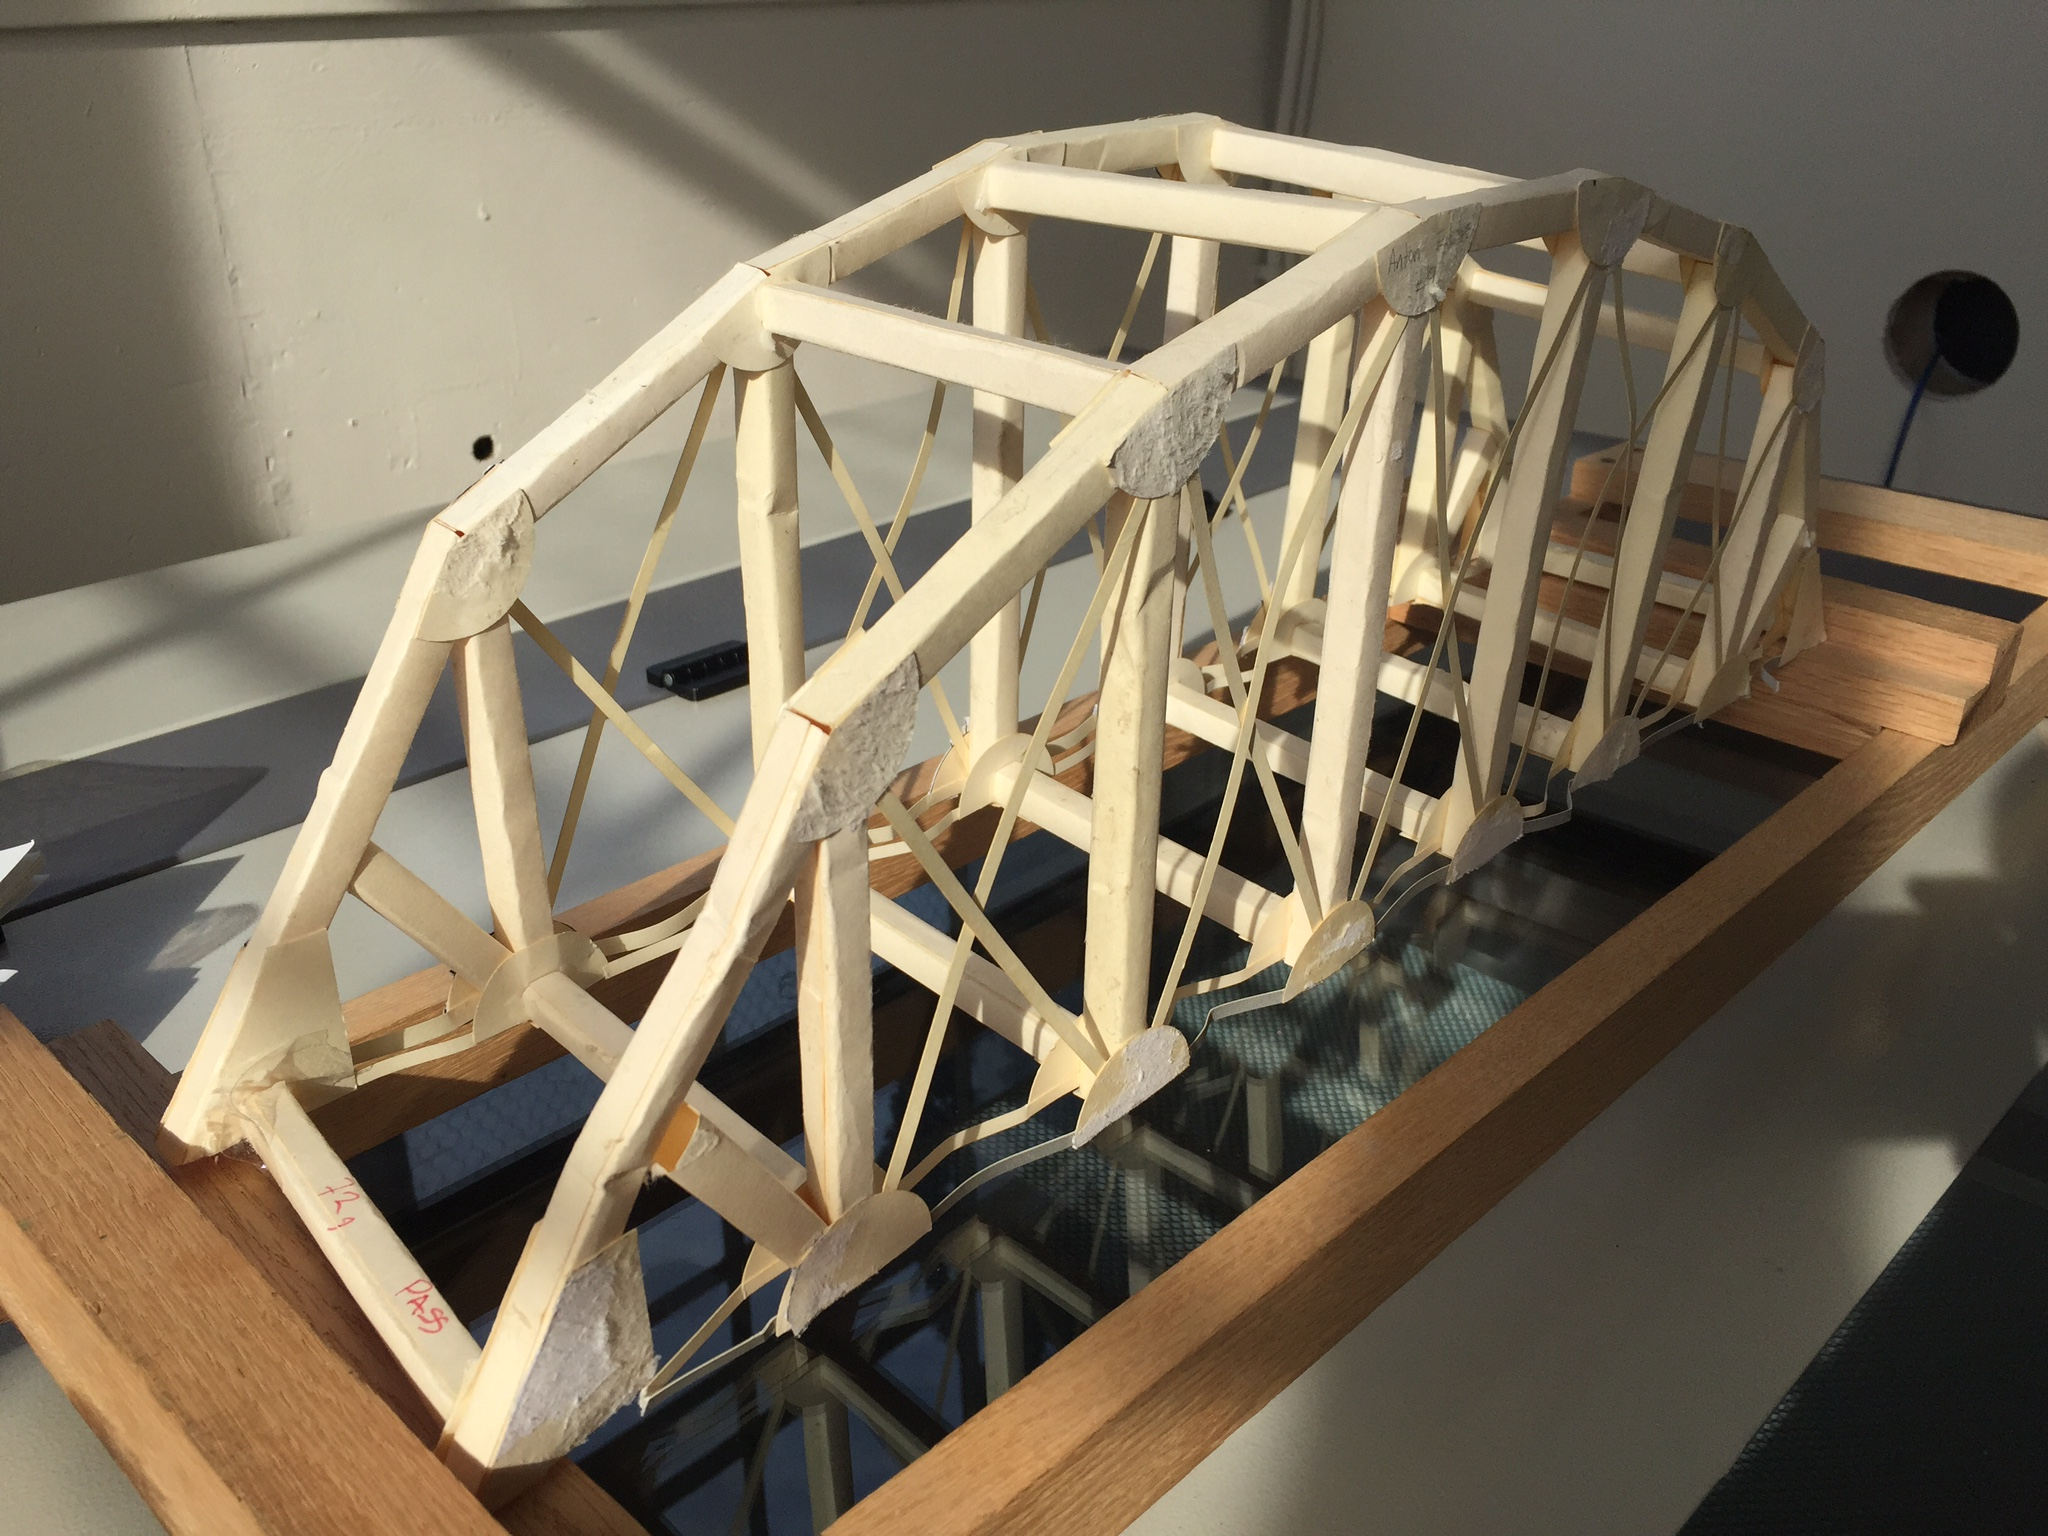 A Modernized Bridge Design Contest Academy Of Physics And Technology